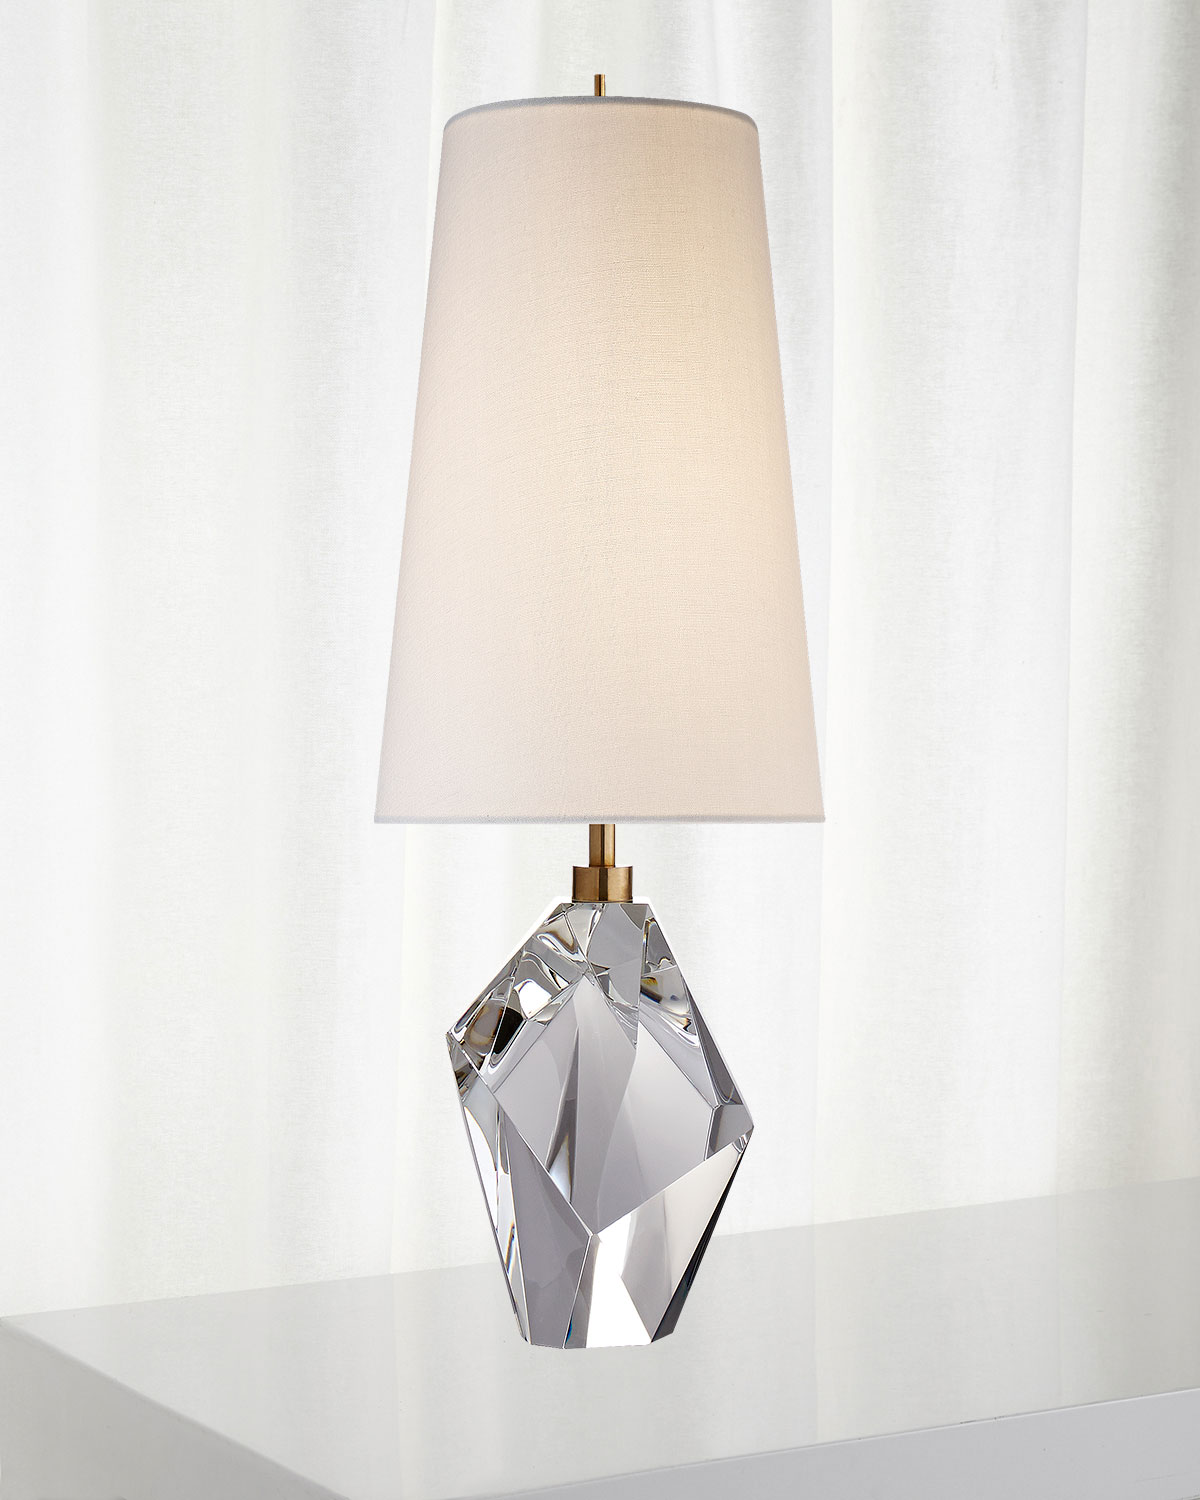 Kelly Wearstler Lighting & lamps HALCYON ACCENT TABLE LAMP